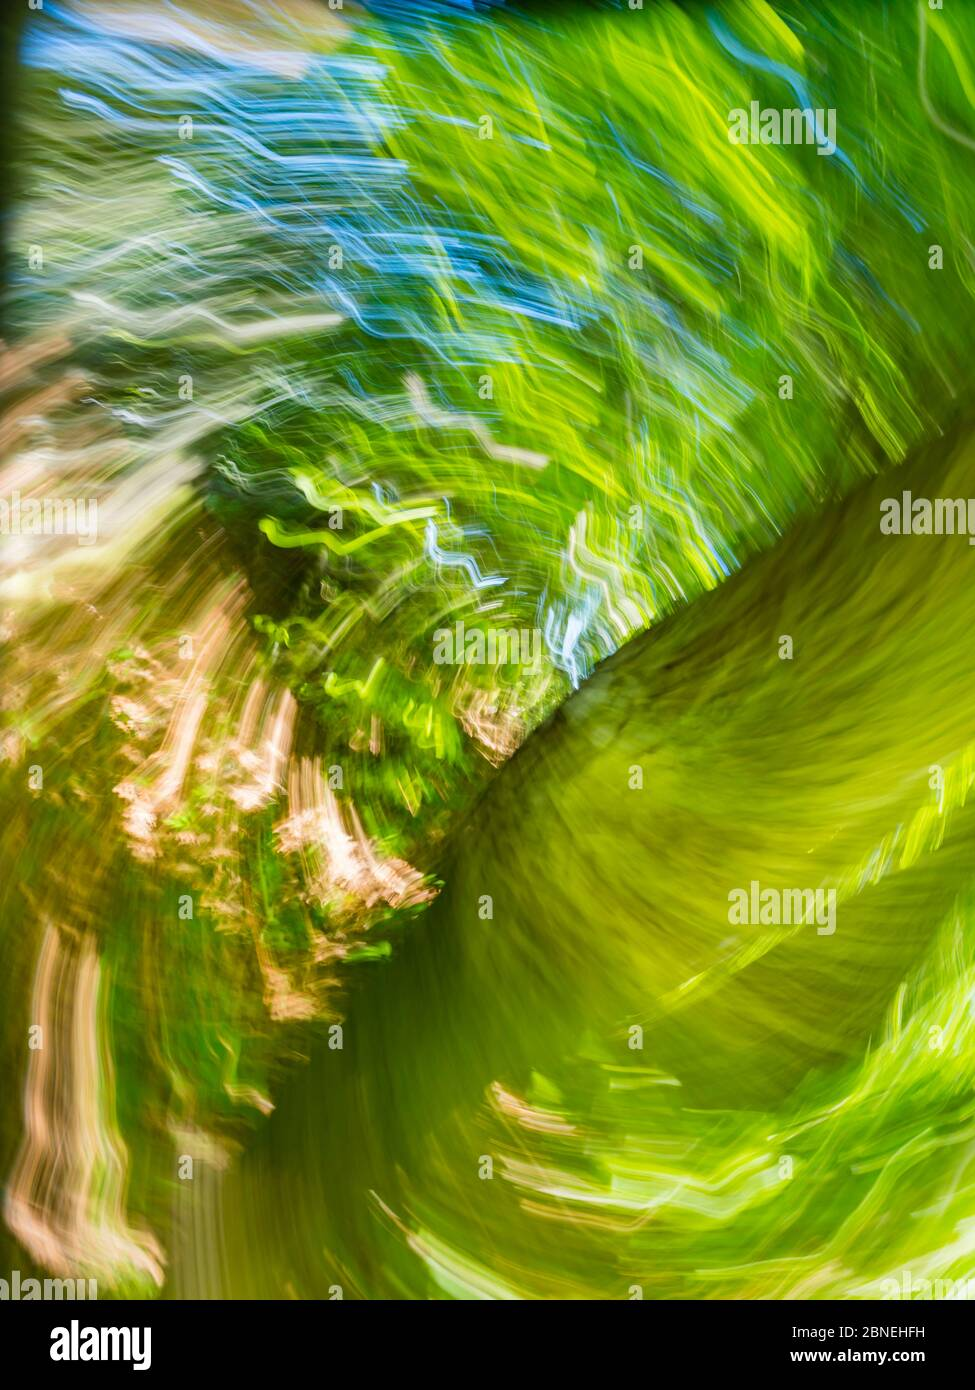 Green forest creating vertigo intentionally blurry representing maximum utmost circular speed speedy fast movement Stock Photo